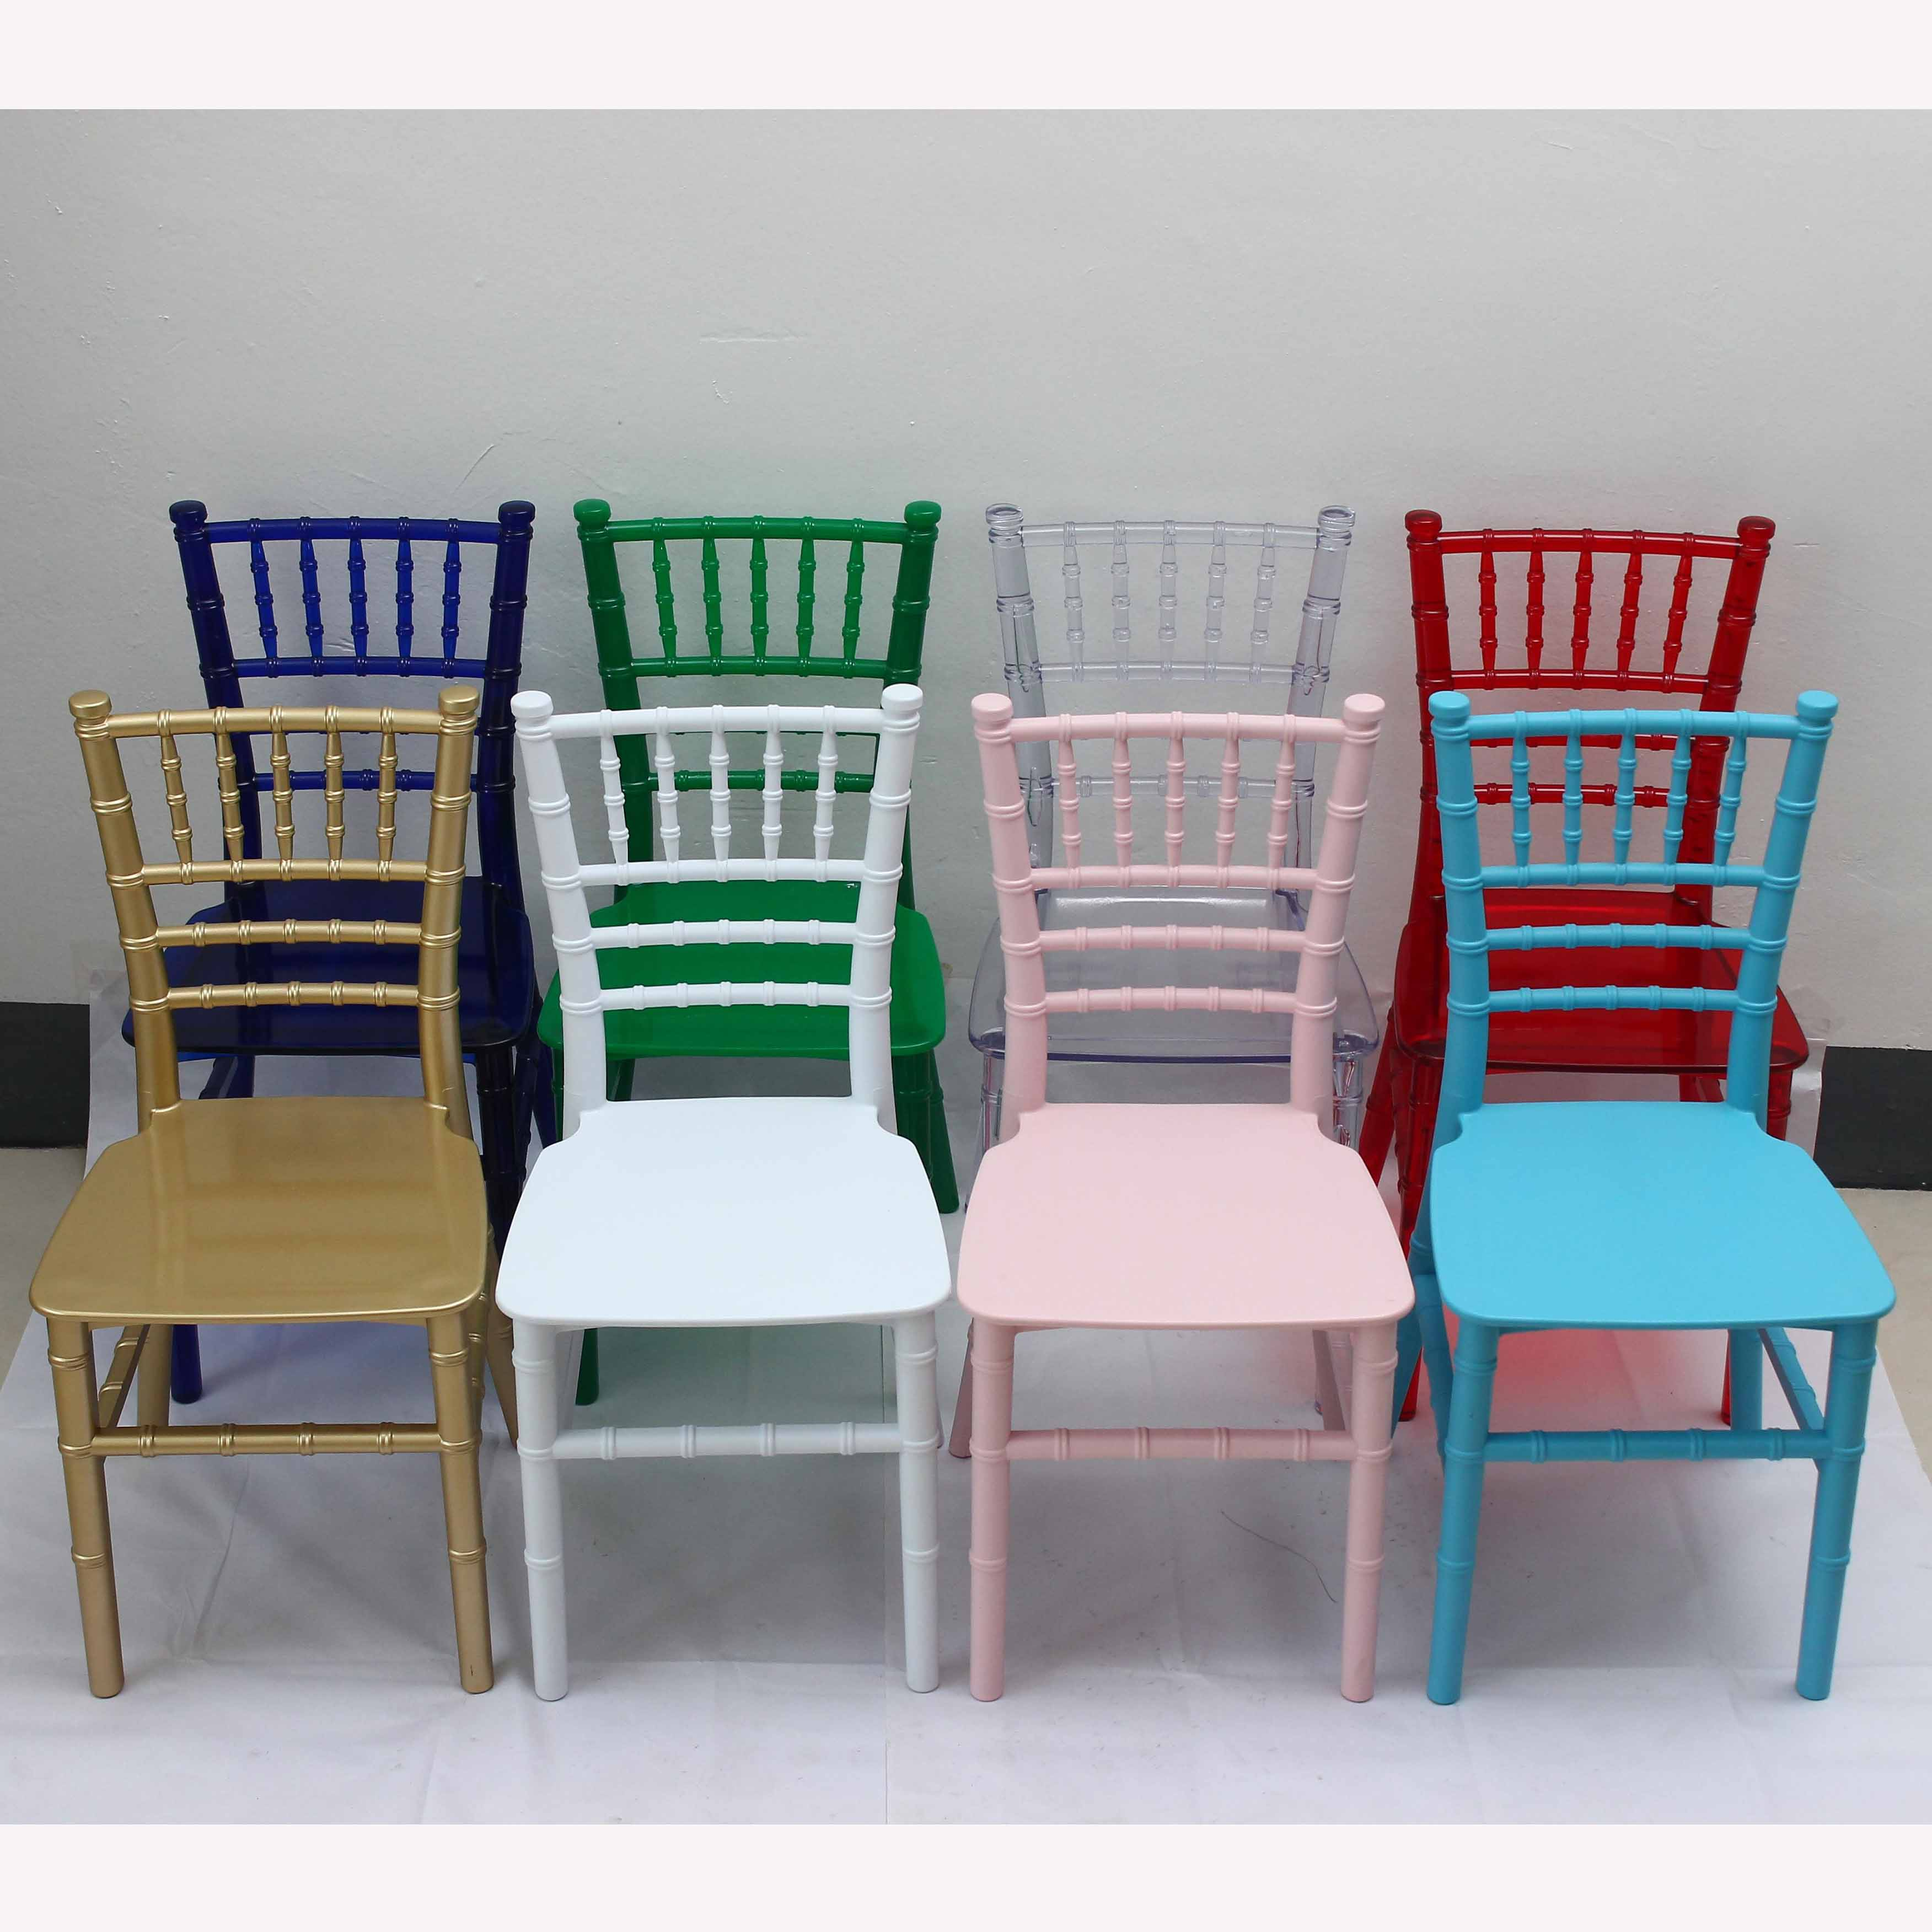 China Plastic Chair And Table Wholesale Alibaba